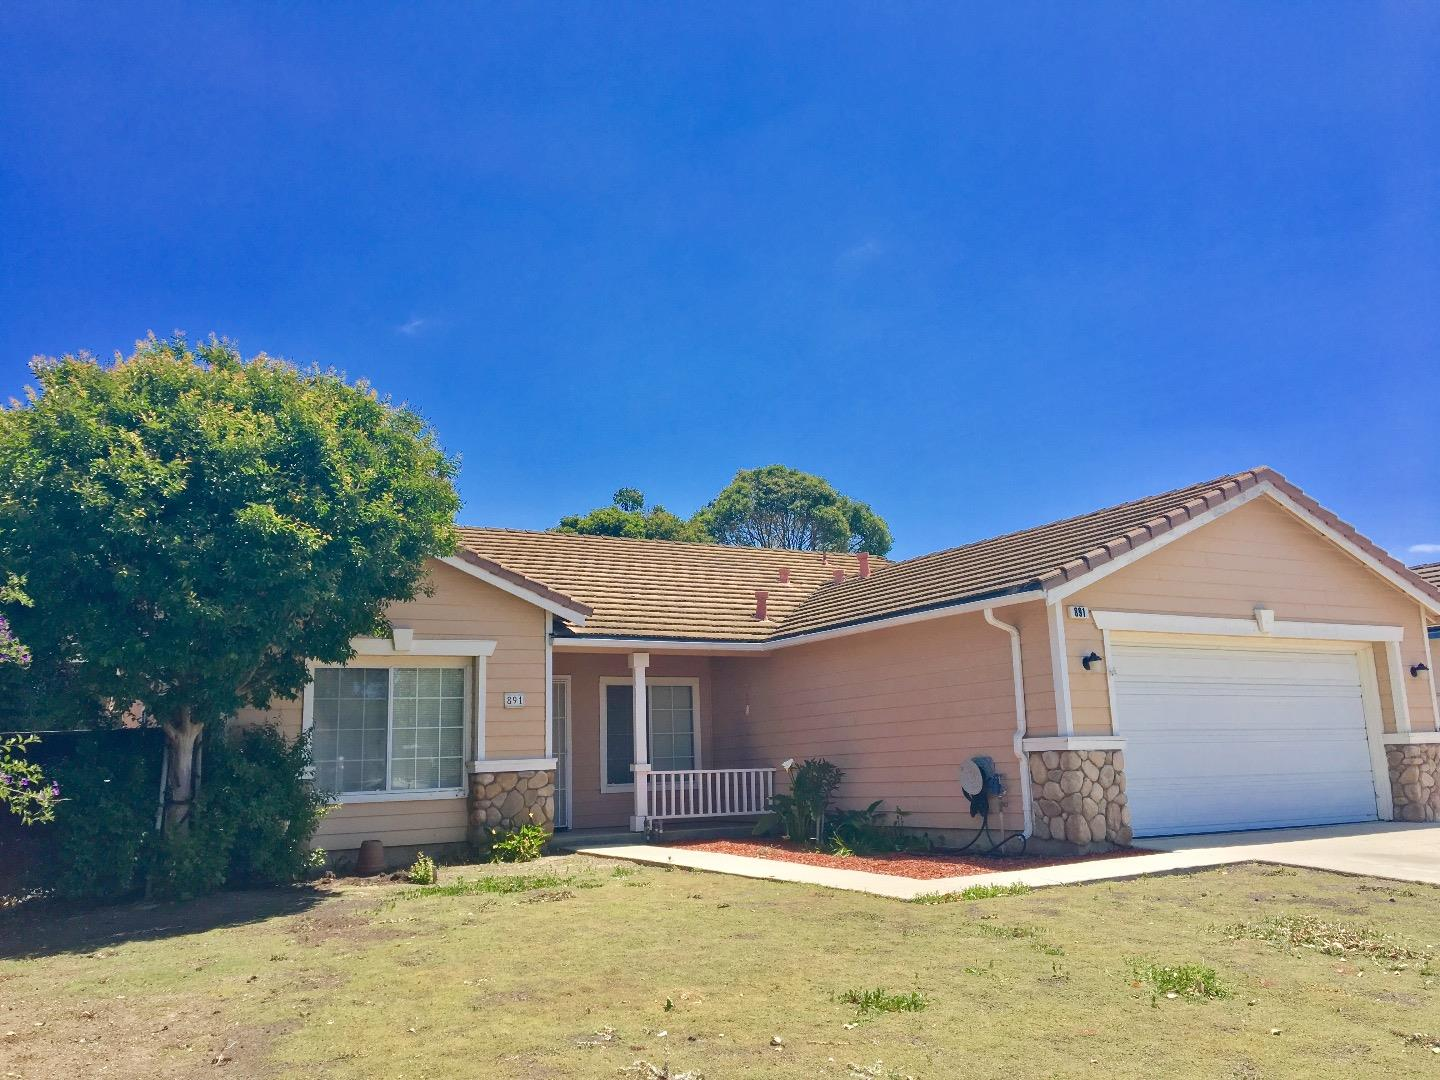 Homes For Sale In Hollister Ca